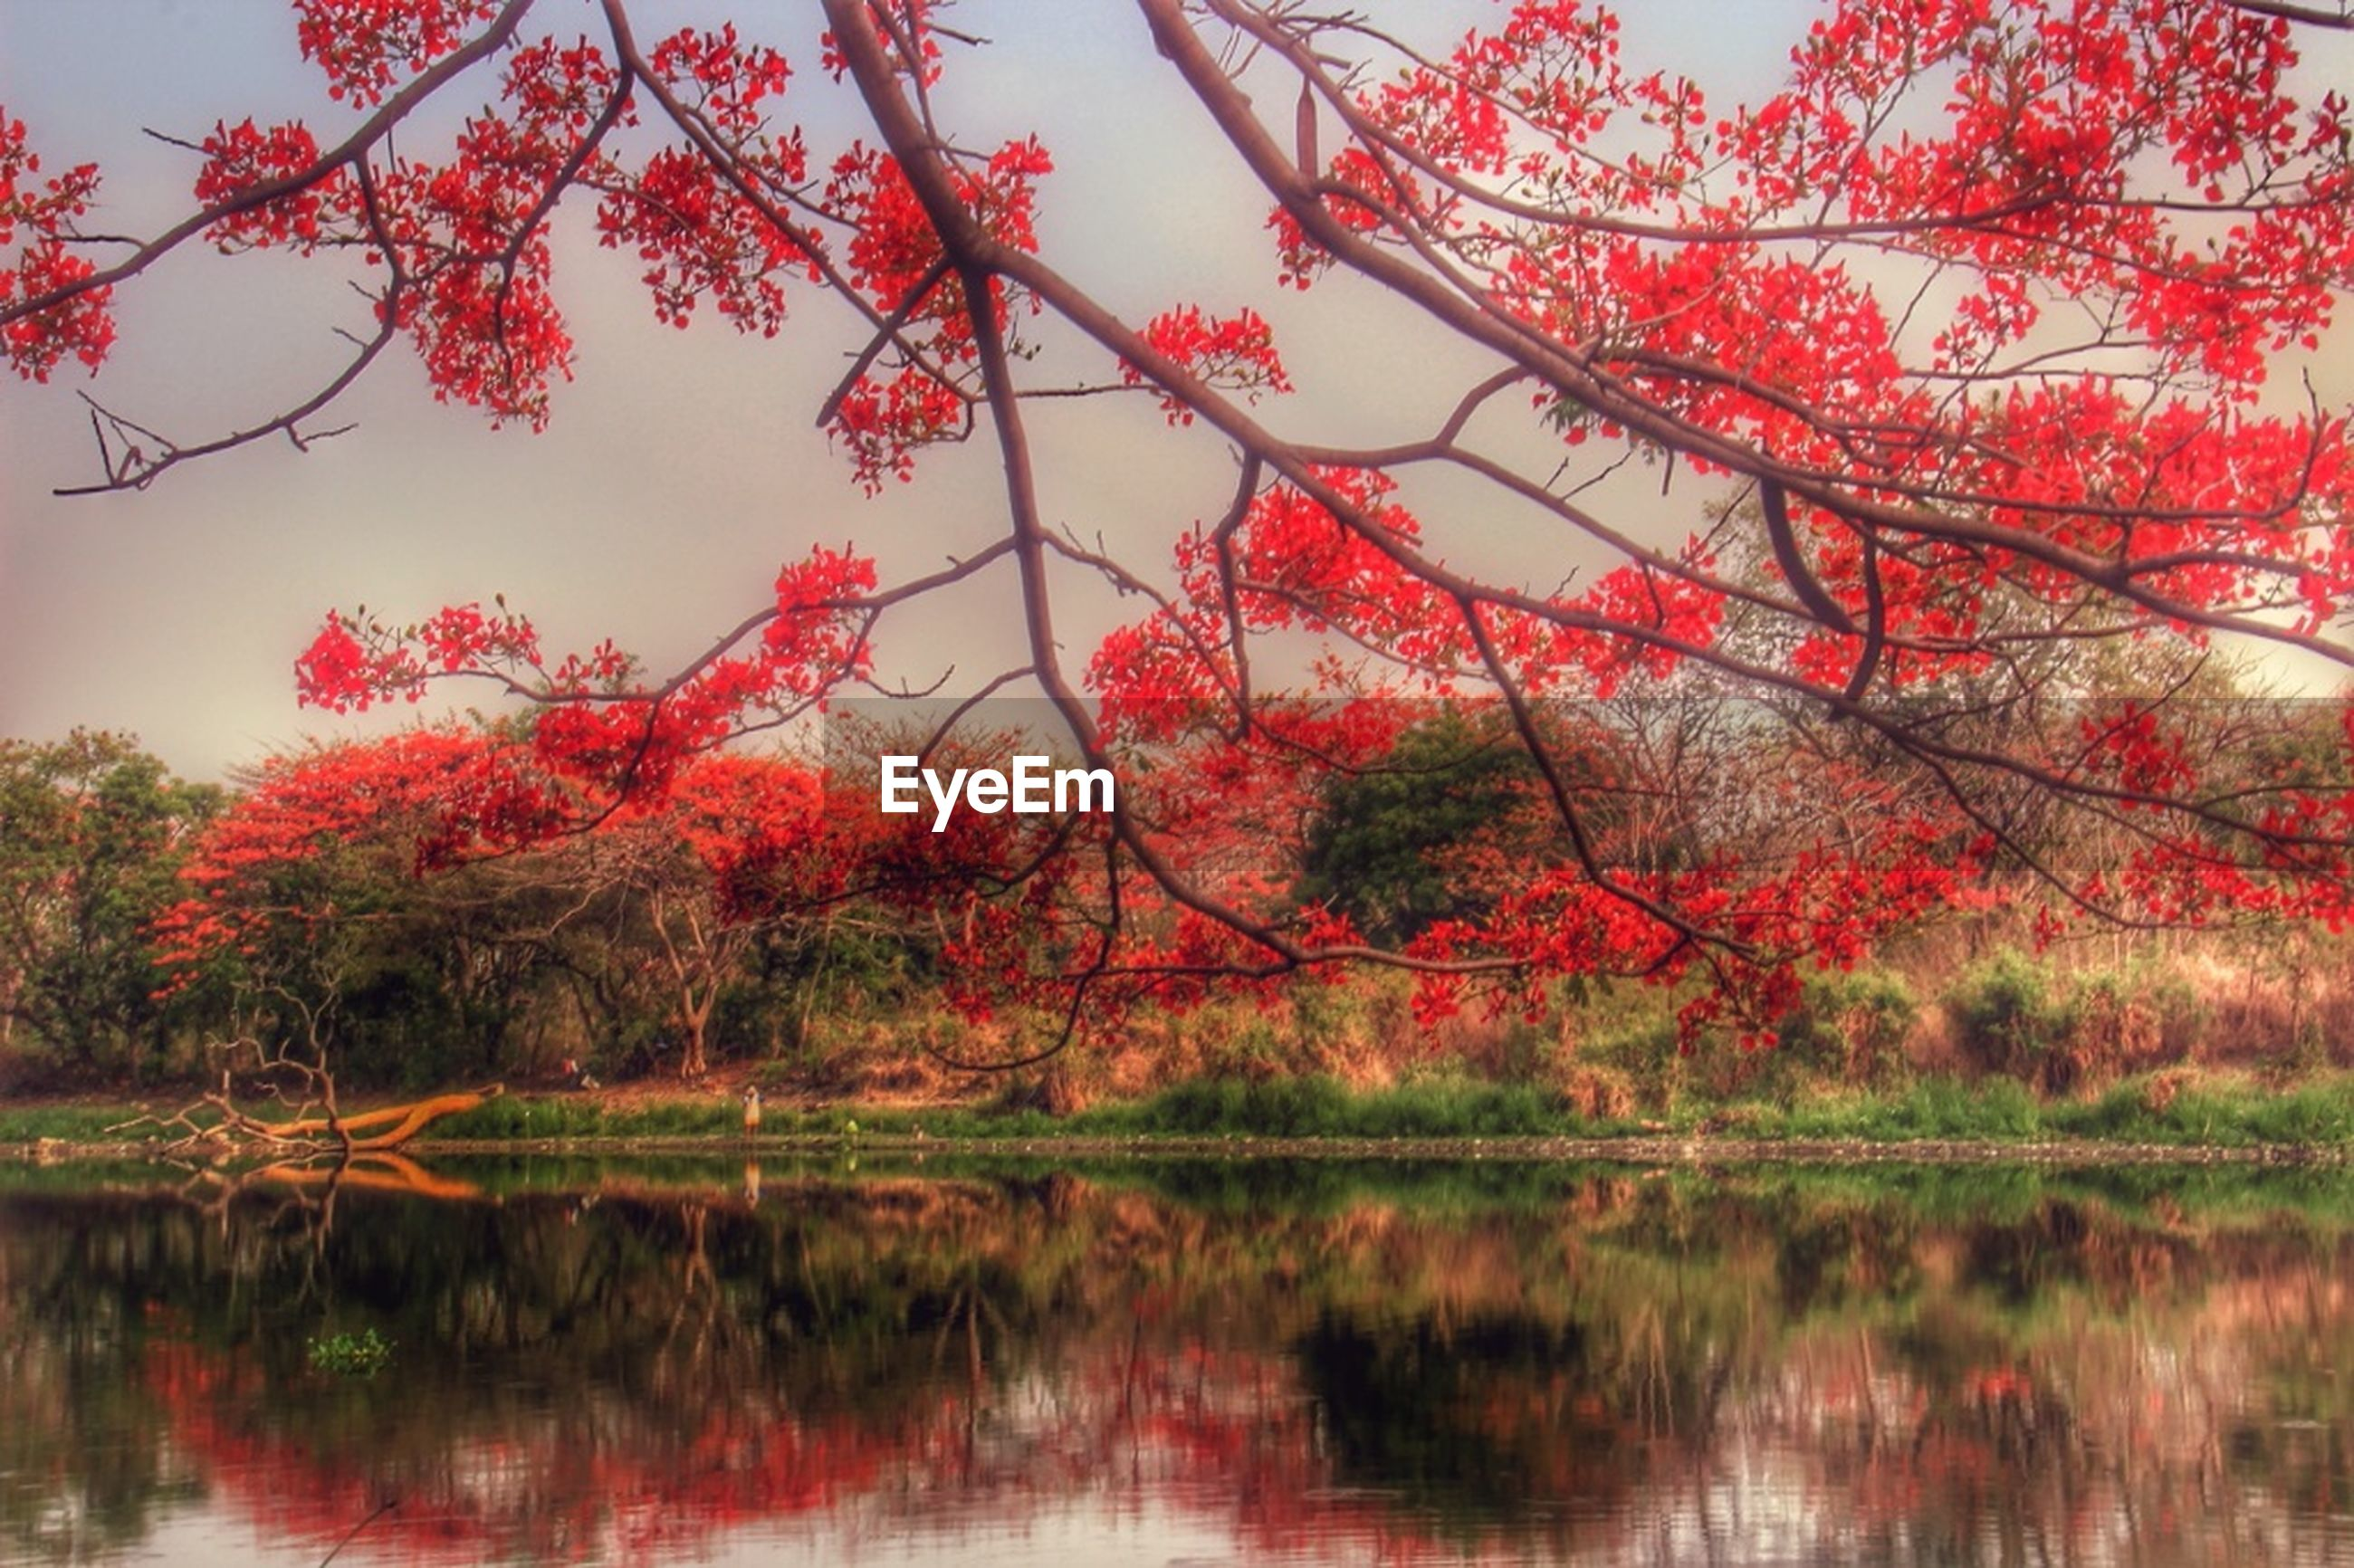 tree, water, reflection, lake, tranquility, beauty in nature, tranquil scene, autumn, waterfront, nature, scenics, growth, change, branch, red, idyllic, sky, day, outdoors, season